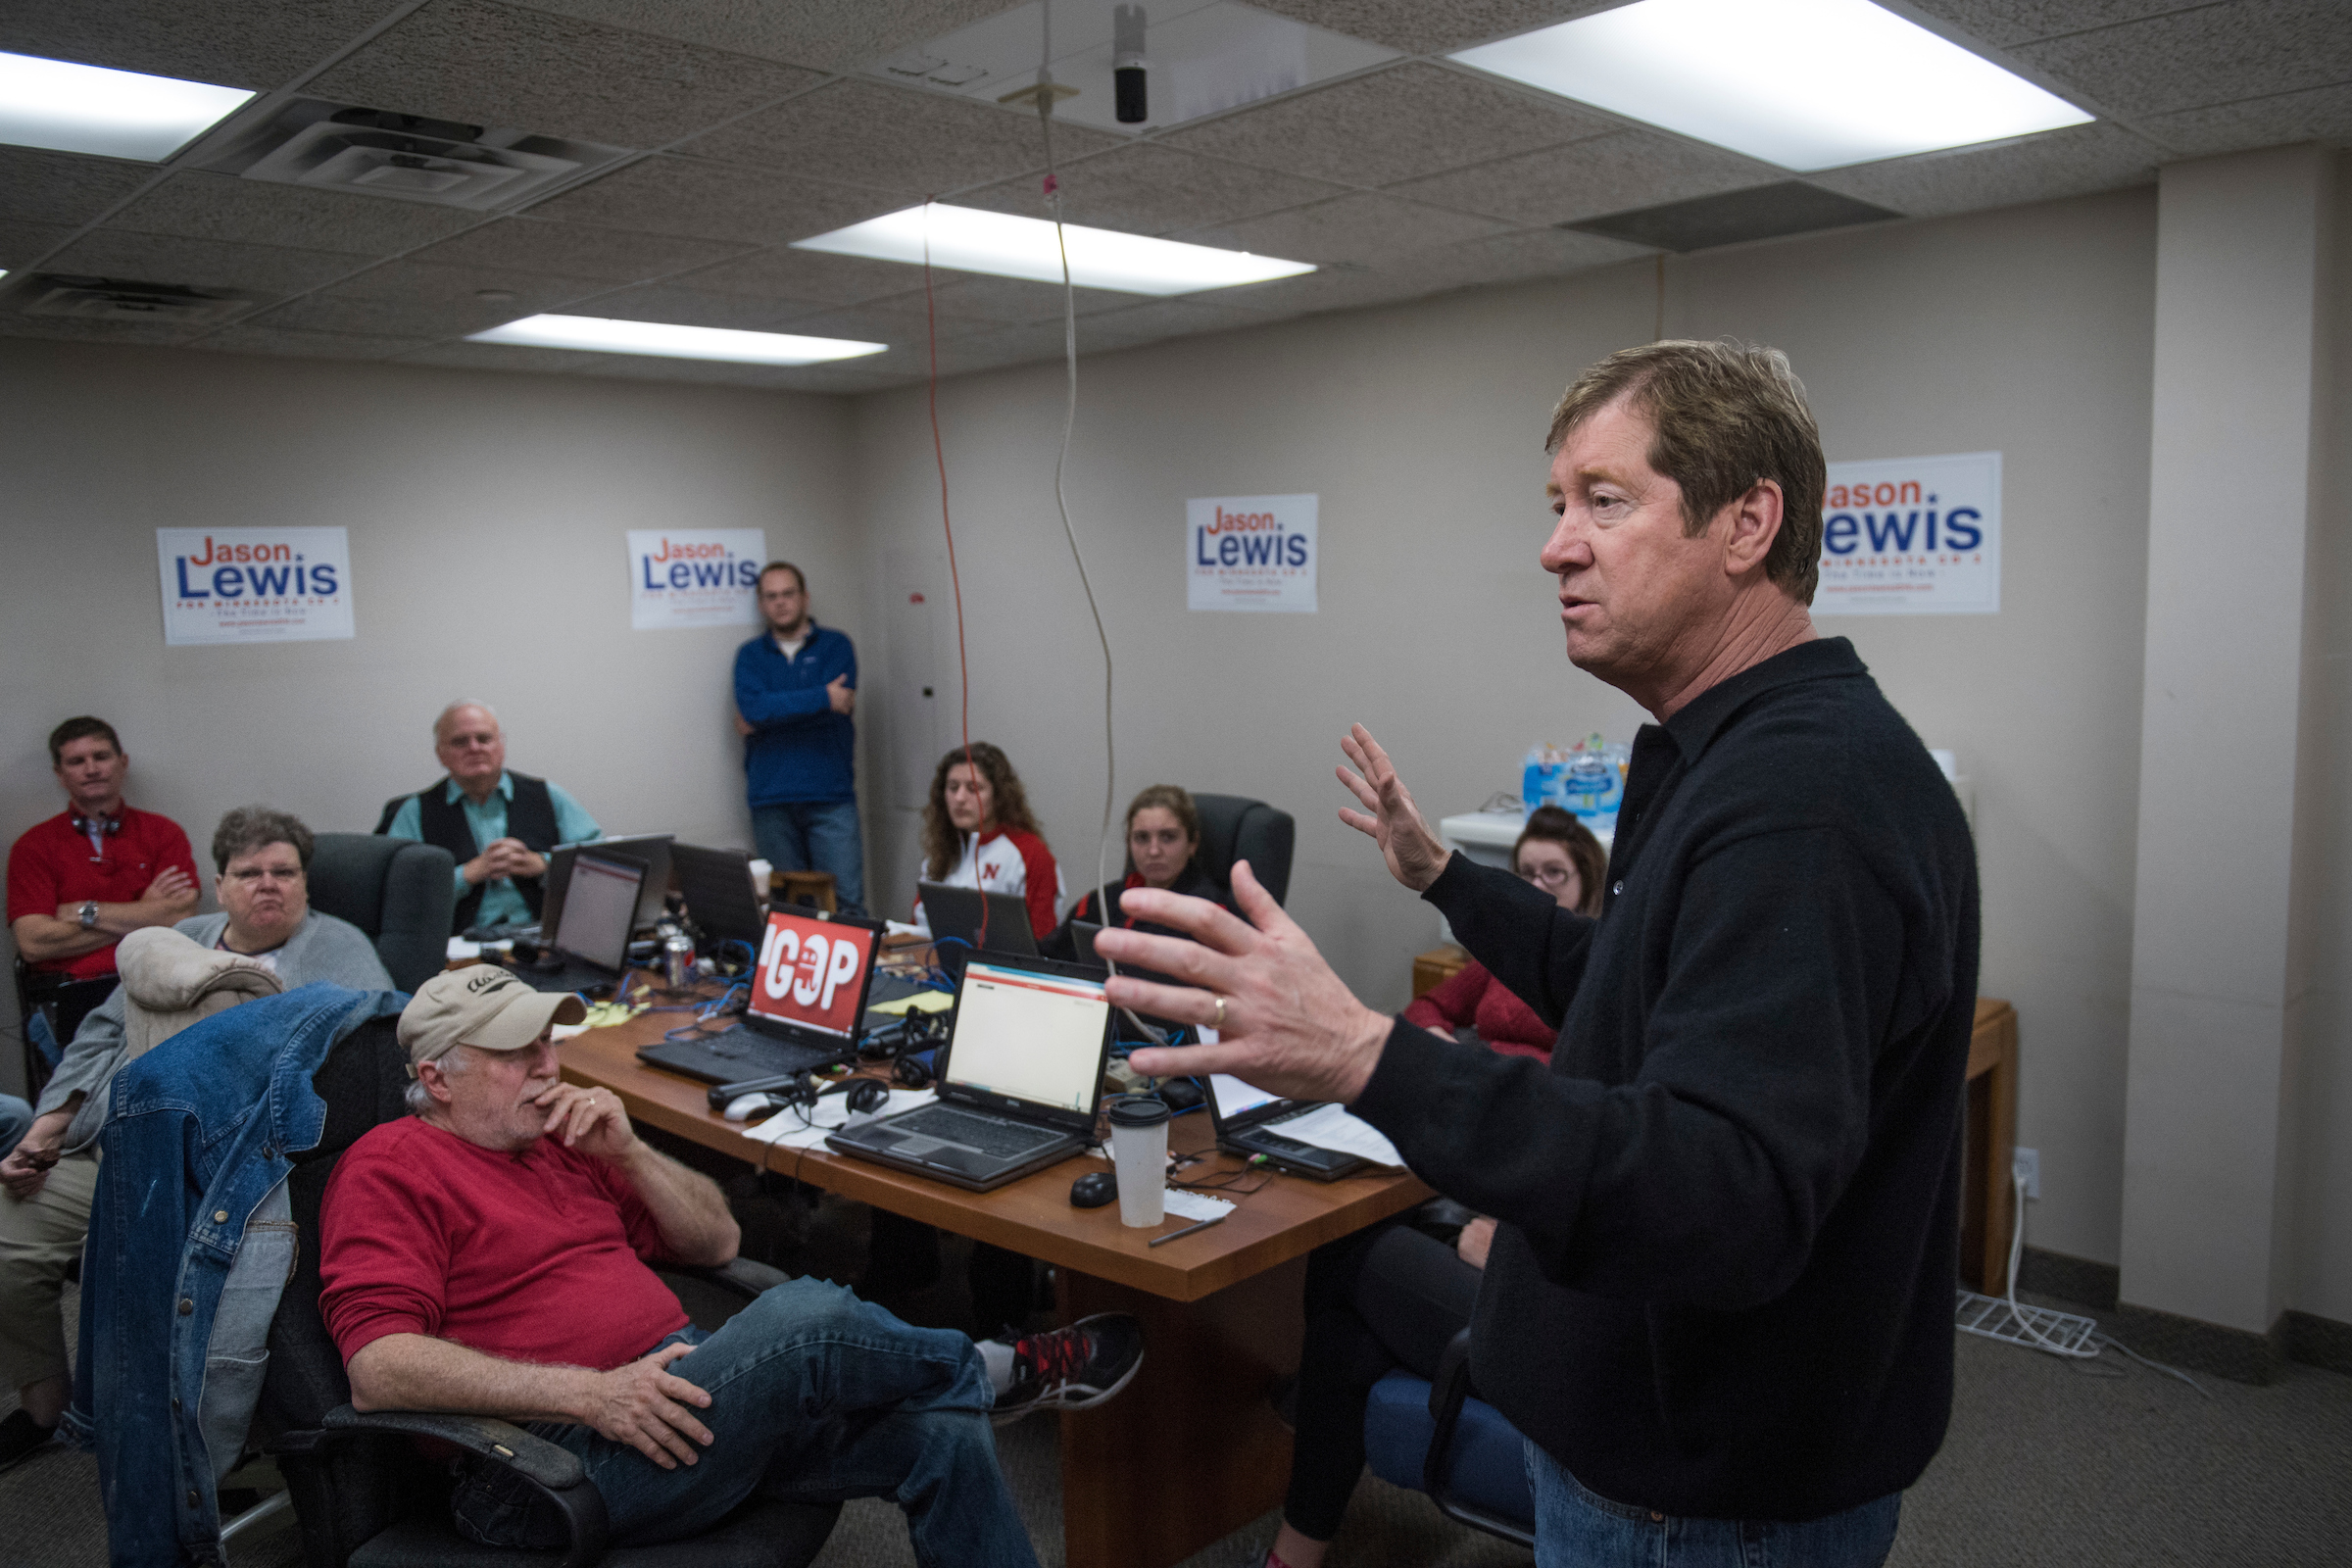 Some of Lewis' supporters say they make a distinction between Lewis the radio host and Lewis the candidate. (Tom Williams/CQ Roll Call)